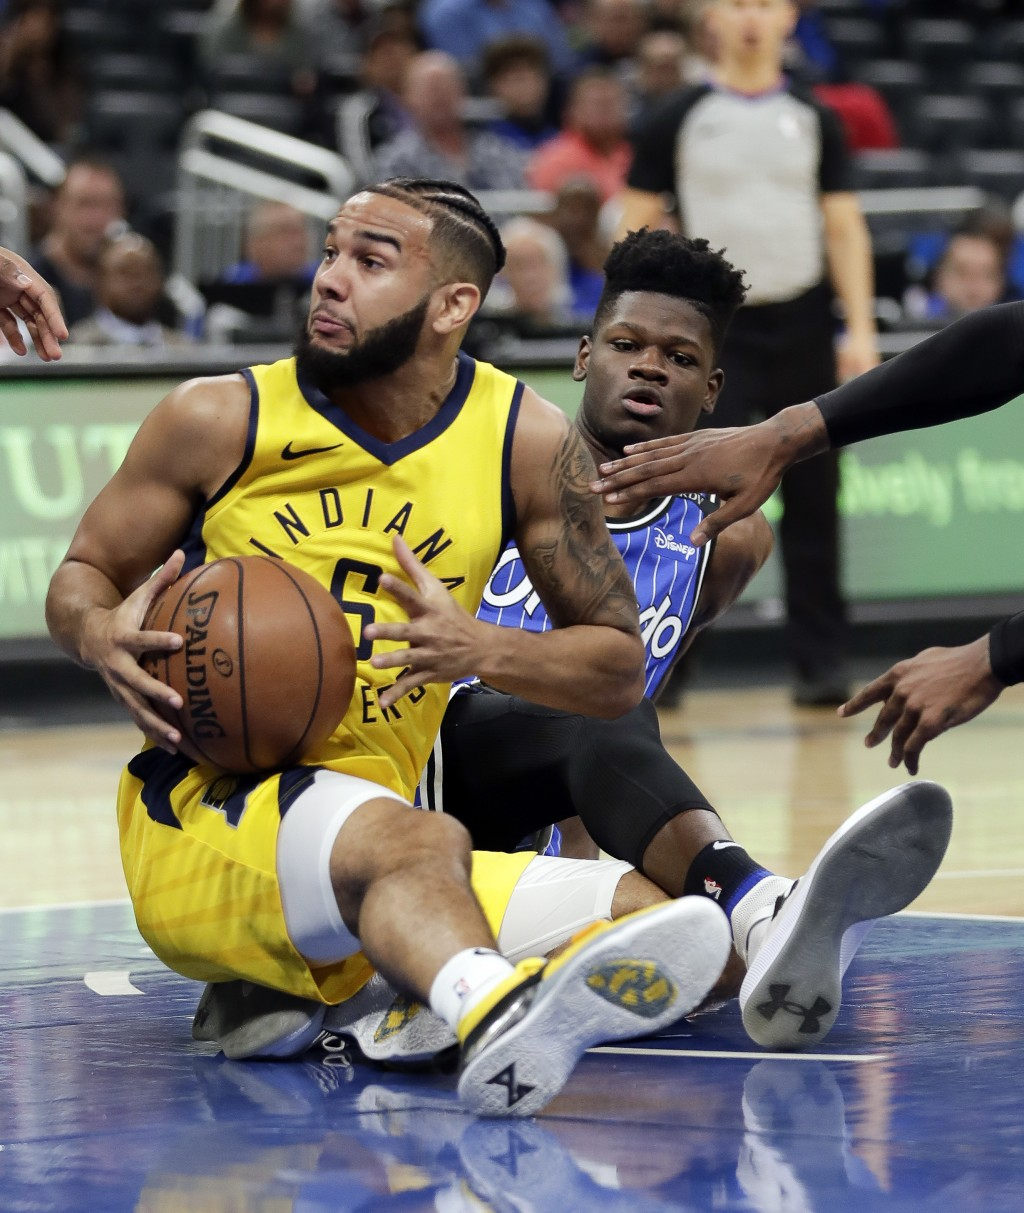 Indiana Pacers' Cory Joseph, left, looks to pass the ball after getting tangled up with Orlando Magic's Mo Bamba during the first half of an NBA baske